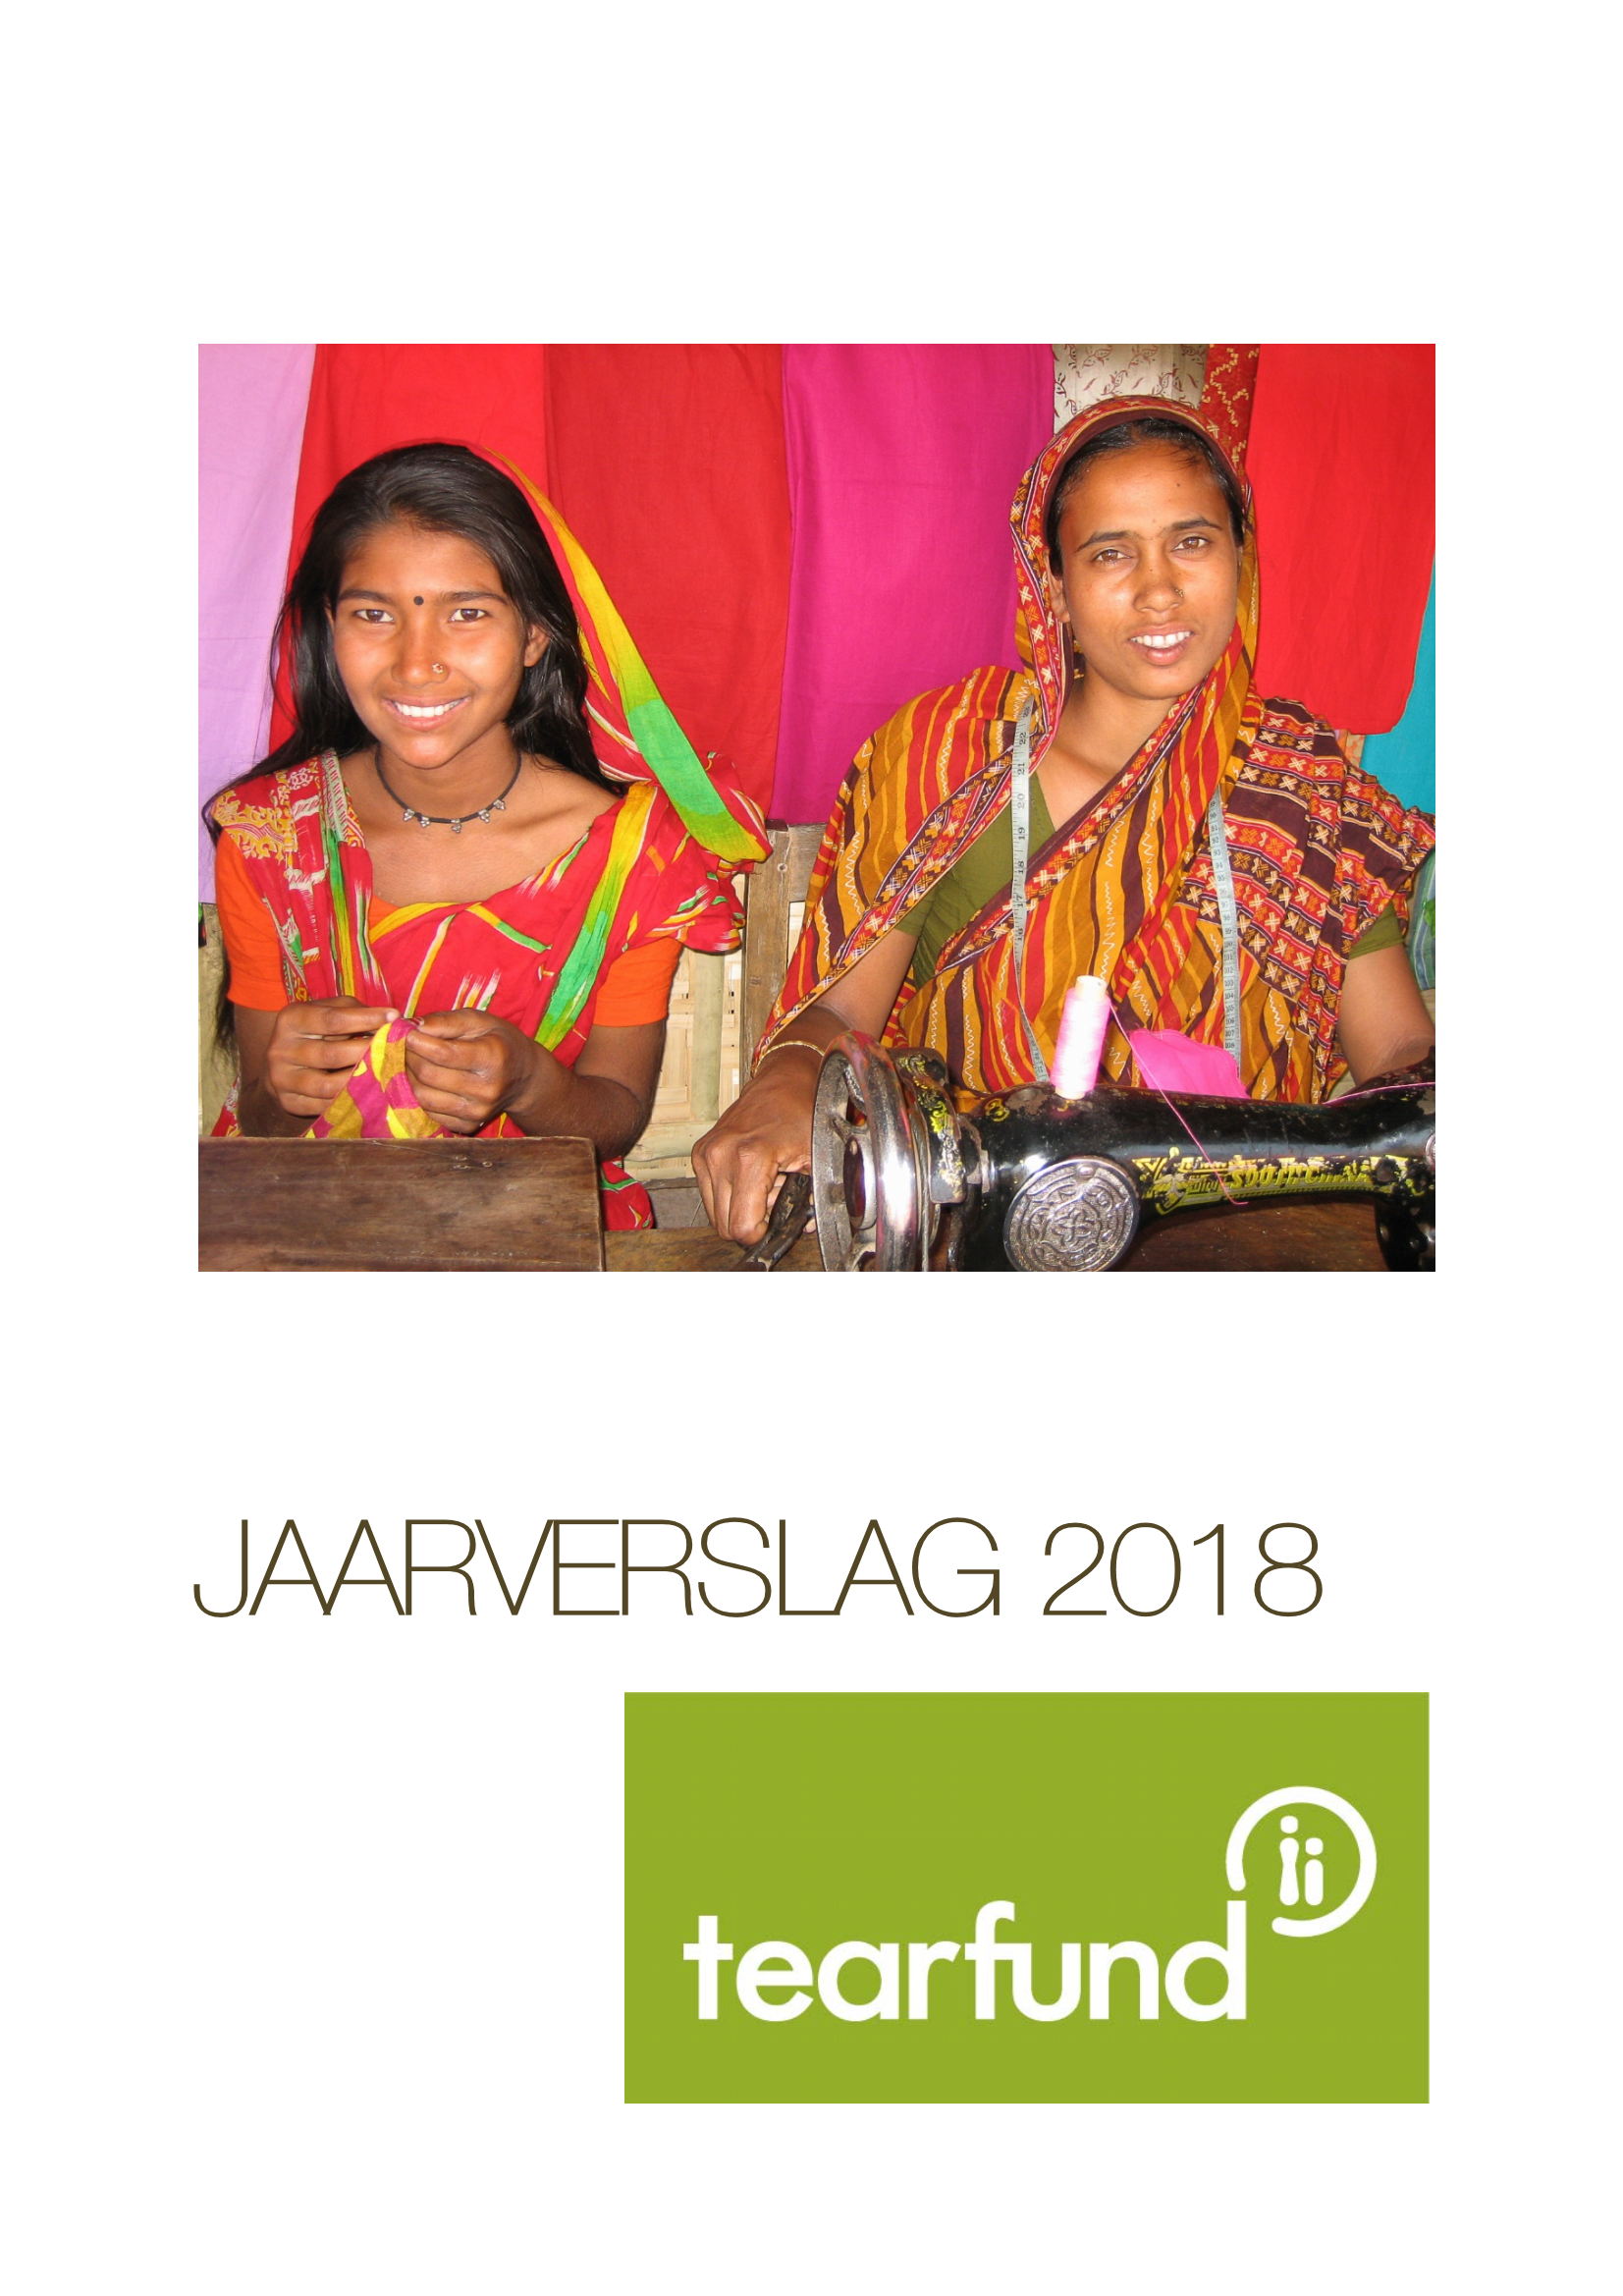 TearfundJaarverslag2018Cover